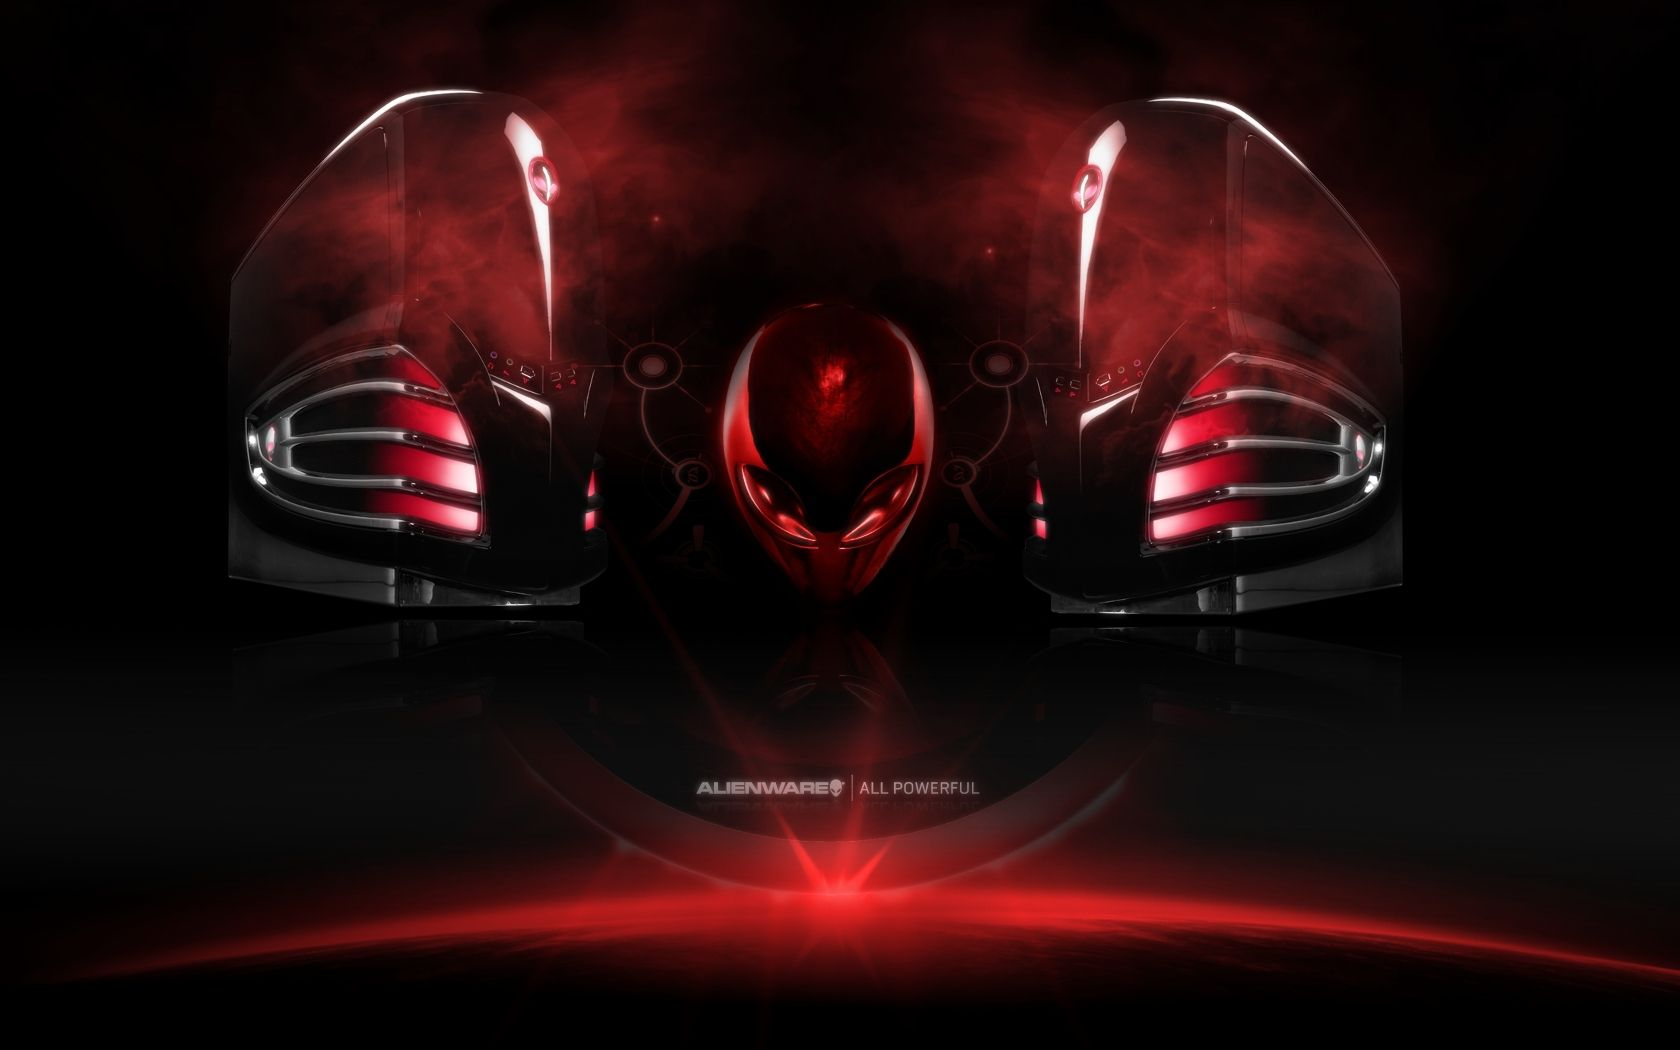 Rainbow Alienware Red By Darkangelkrys On DeviantArt 1920x1080 Wallpapers 1920x1200 38